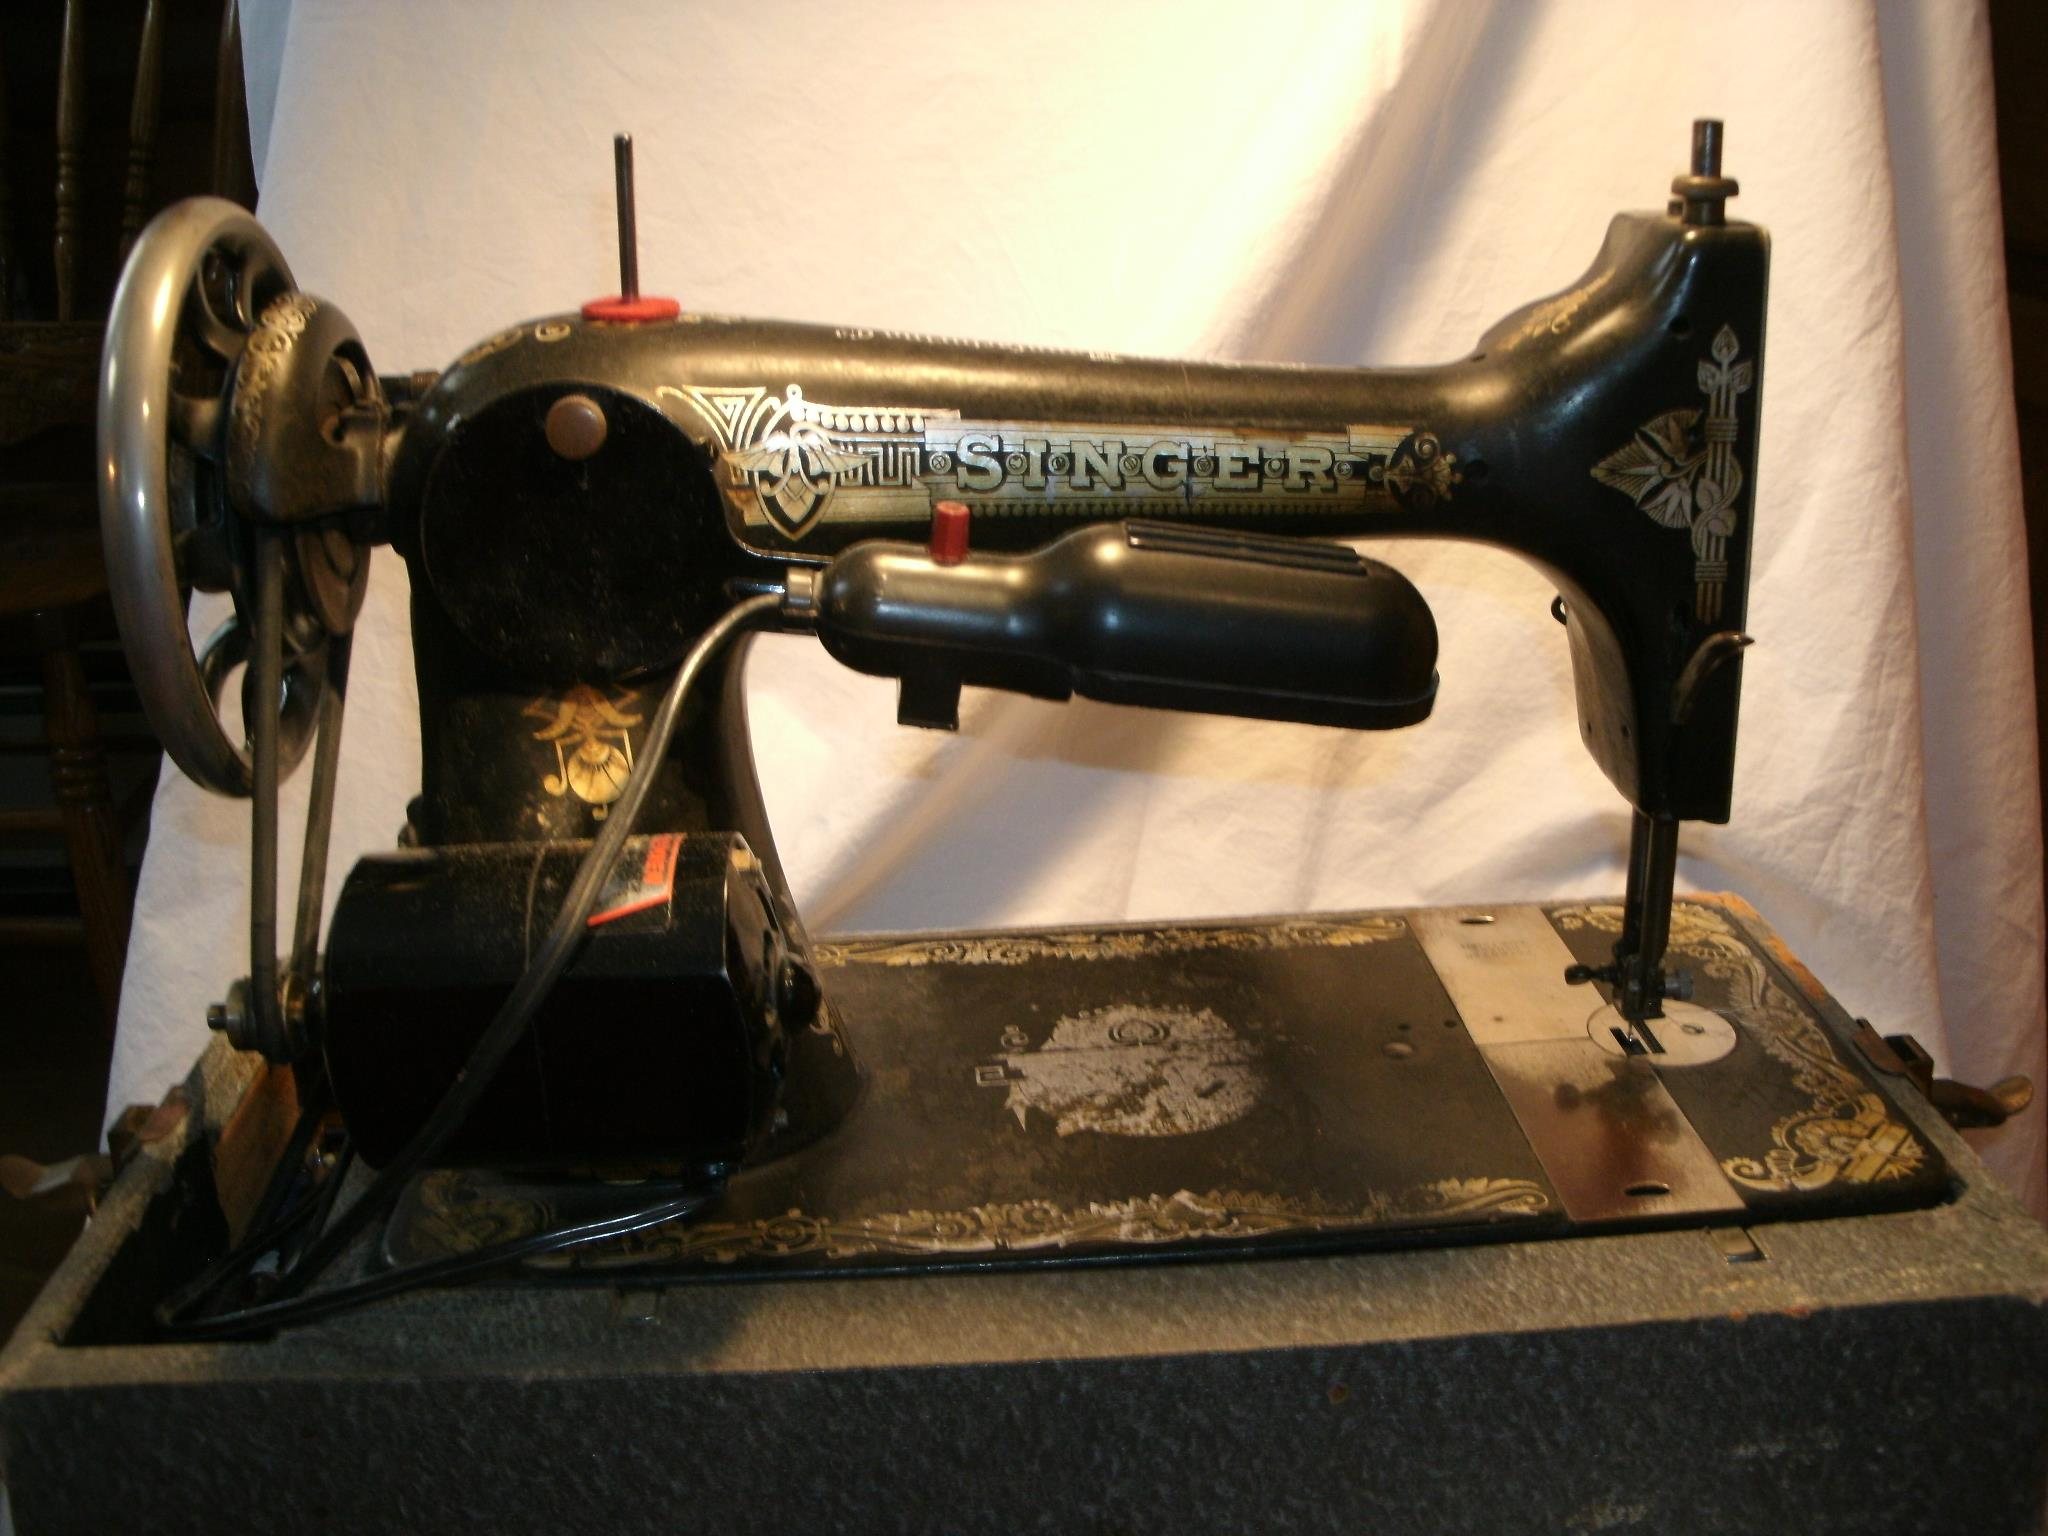 singer 66 dating Dating british singer sewing machines the smaller stable-mate to the singer 66 was the singer 99 identical except for size and a wonderful performer.